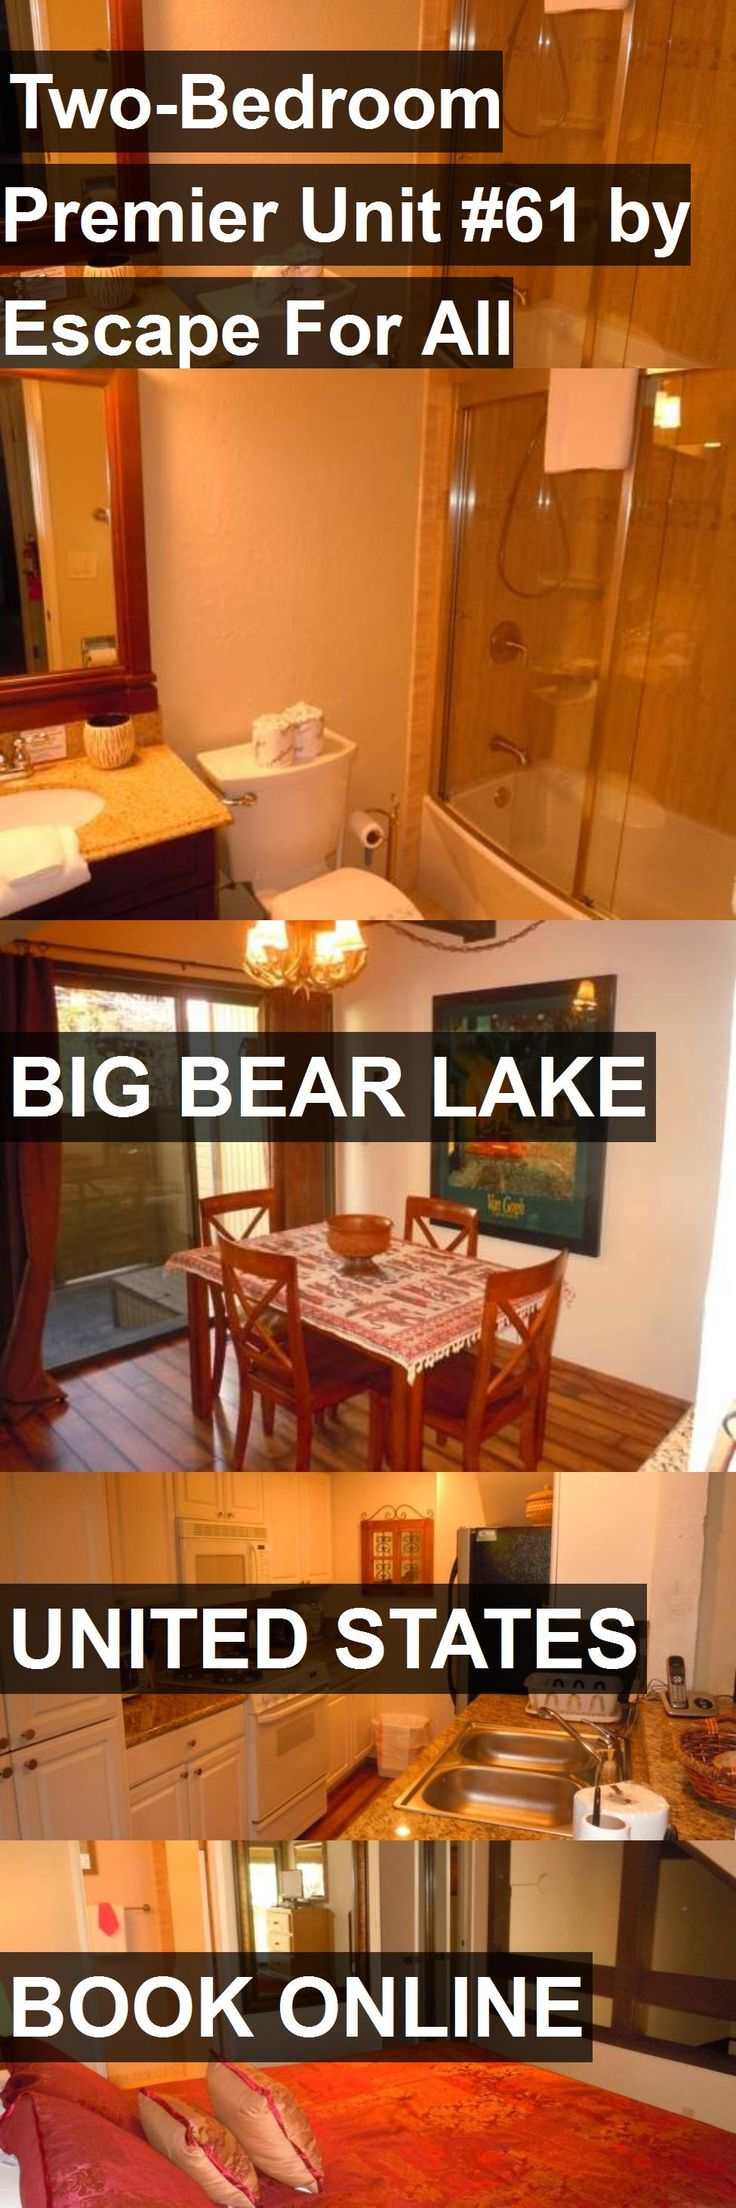 Hotel Two-Bedroom Premier Unit #61 by Escape For All Seasons in Big Bear Lake, United States. For more information, photos, reviews and best prices please follow the link. #UnitedStates #BigBearLake #travel #vacation #hotel